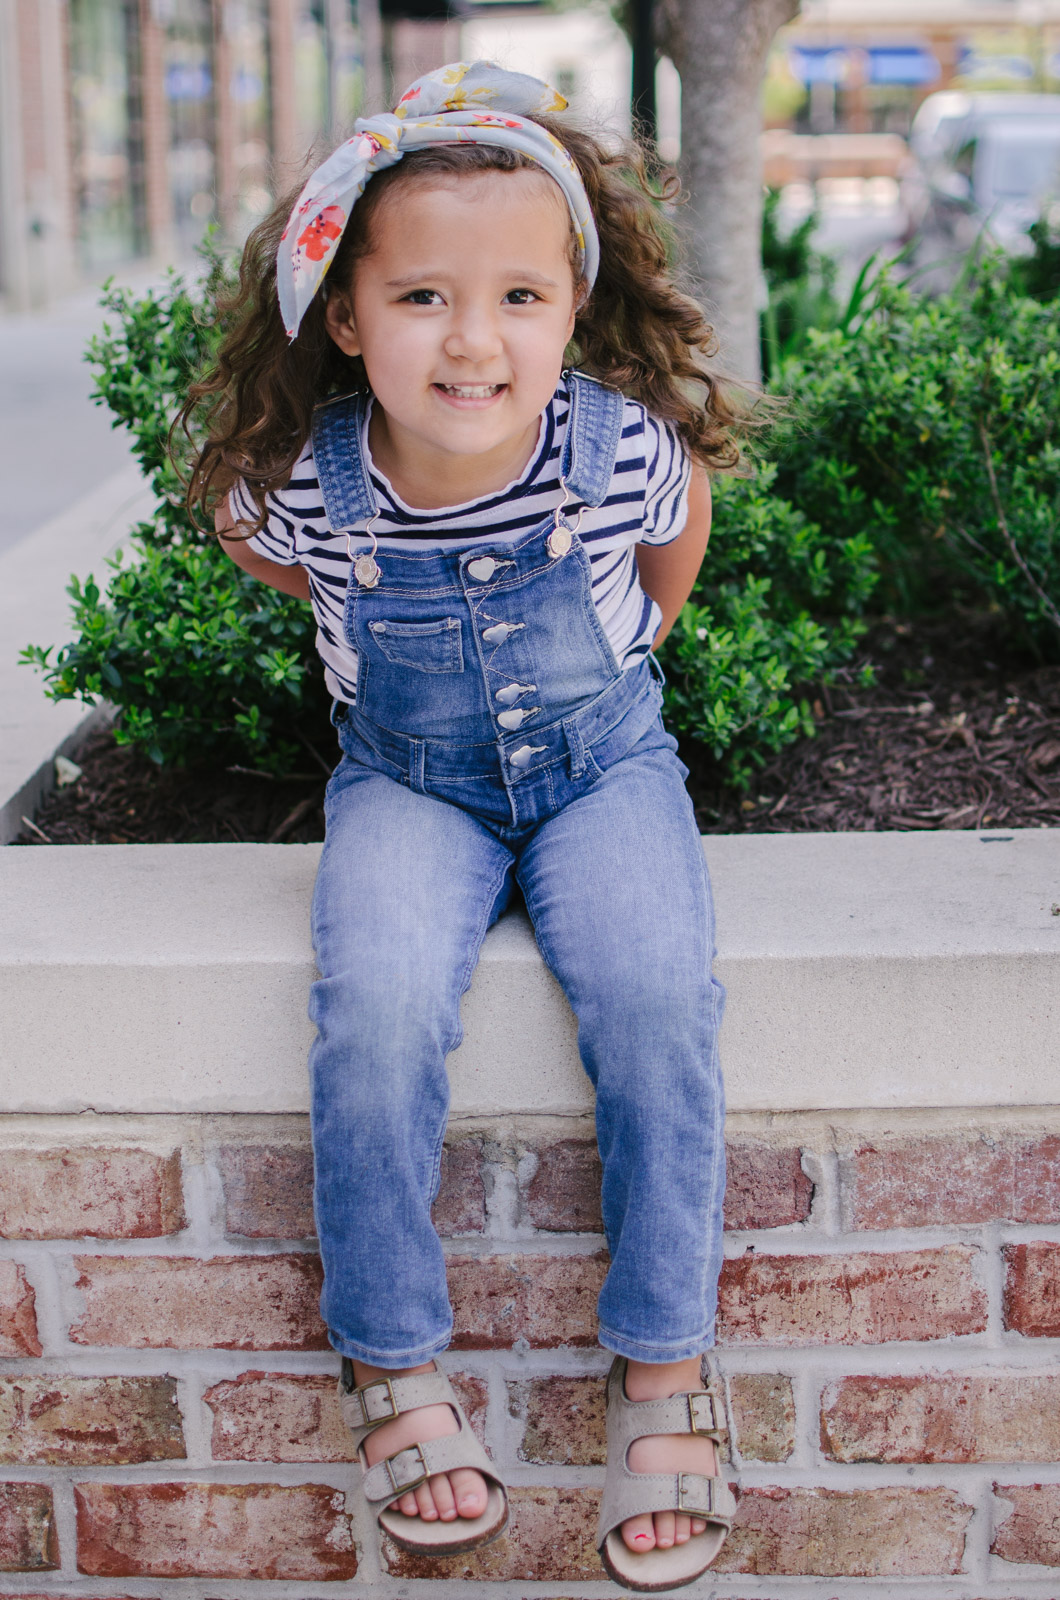 toddler girl overalls outfit - mommy and me matching outfits | bylaurenm.com